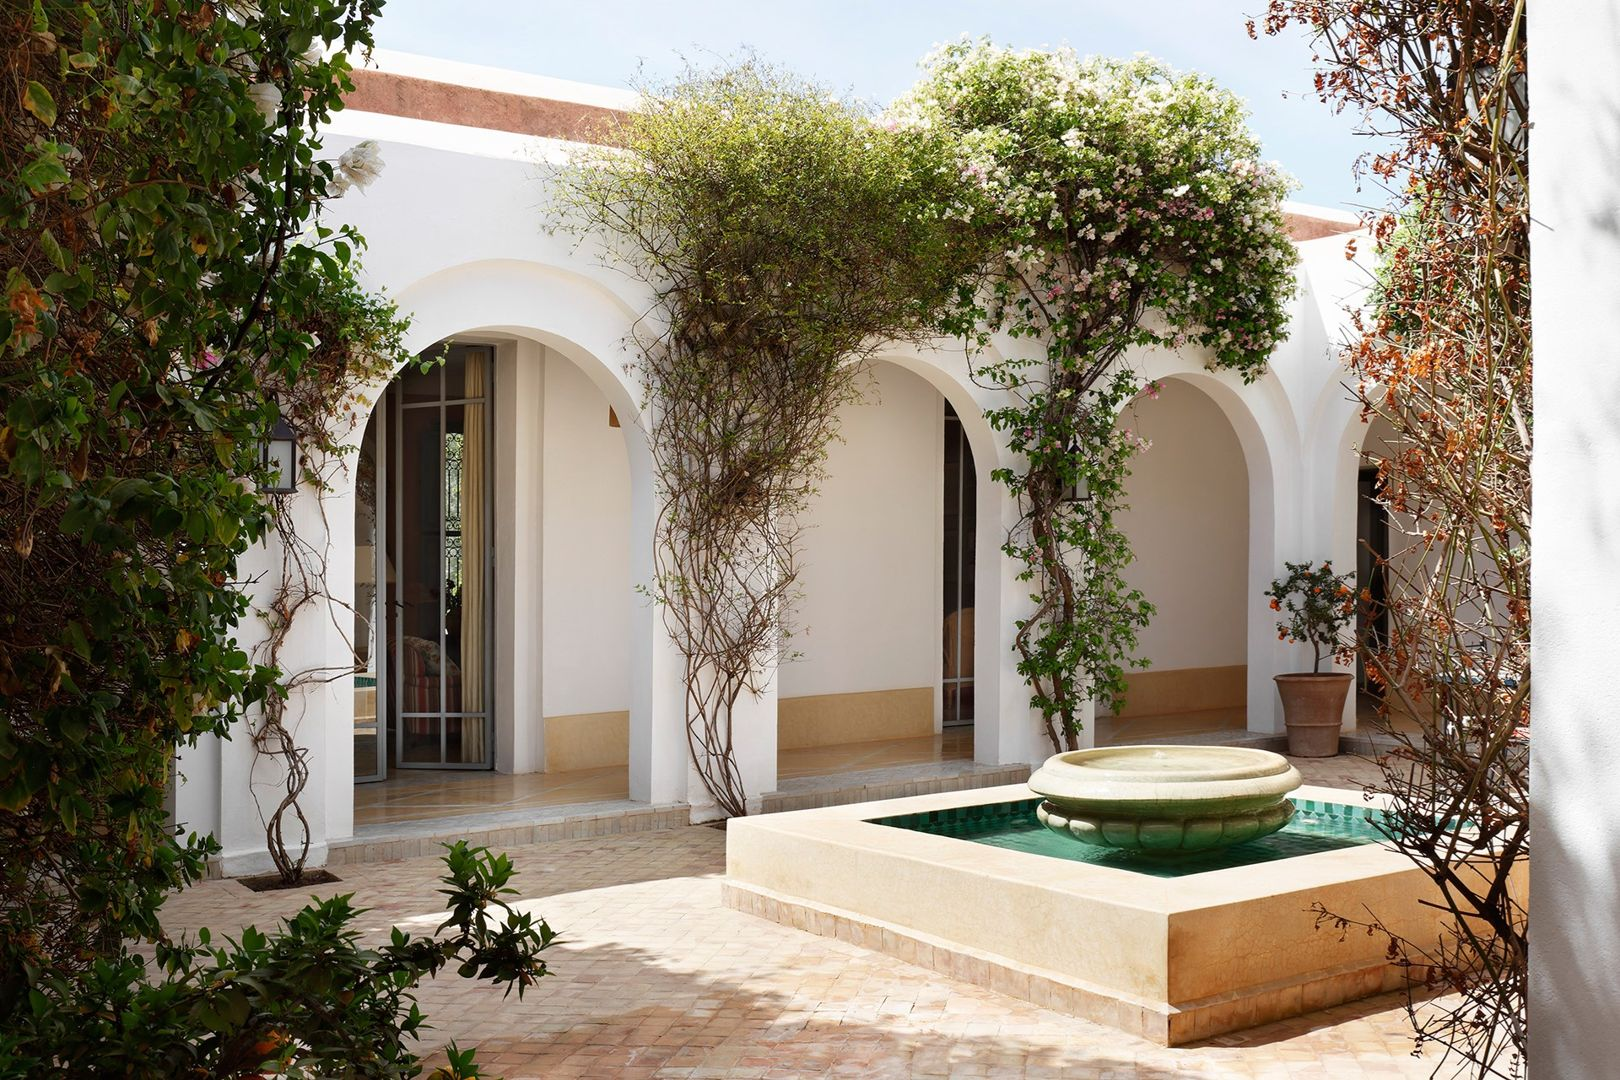 ROSE & IVY Journal Outdoor Living | A Moroccan Oasis